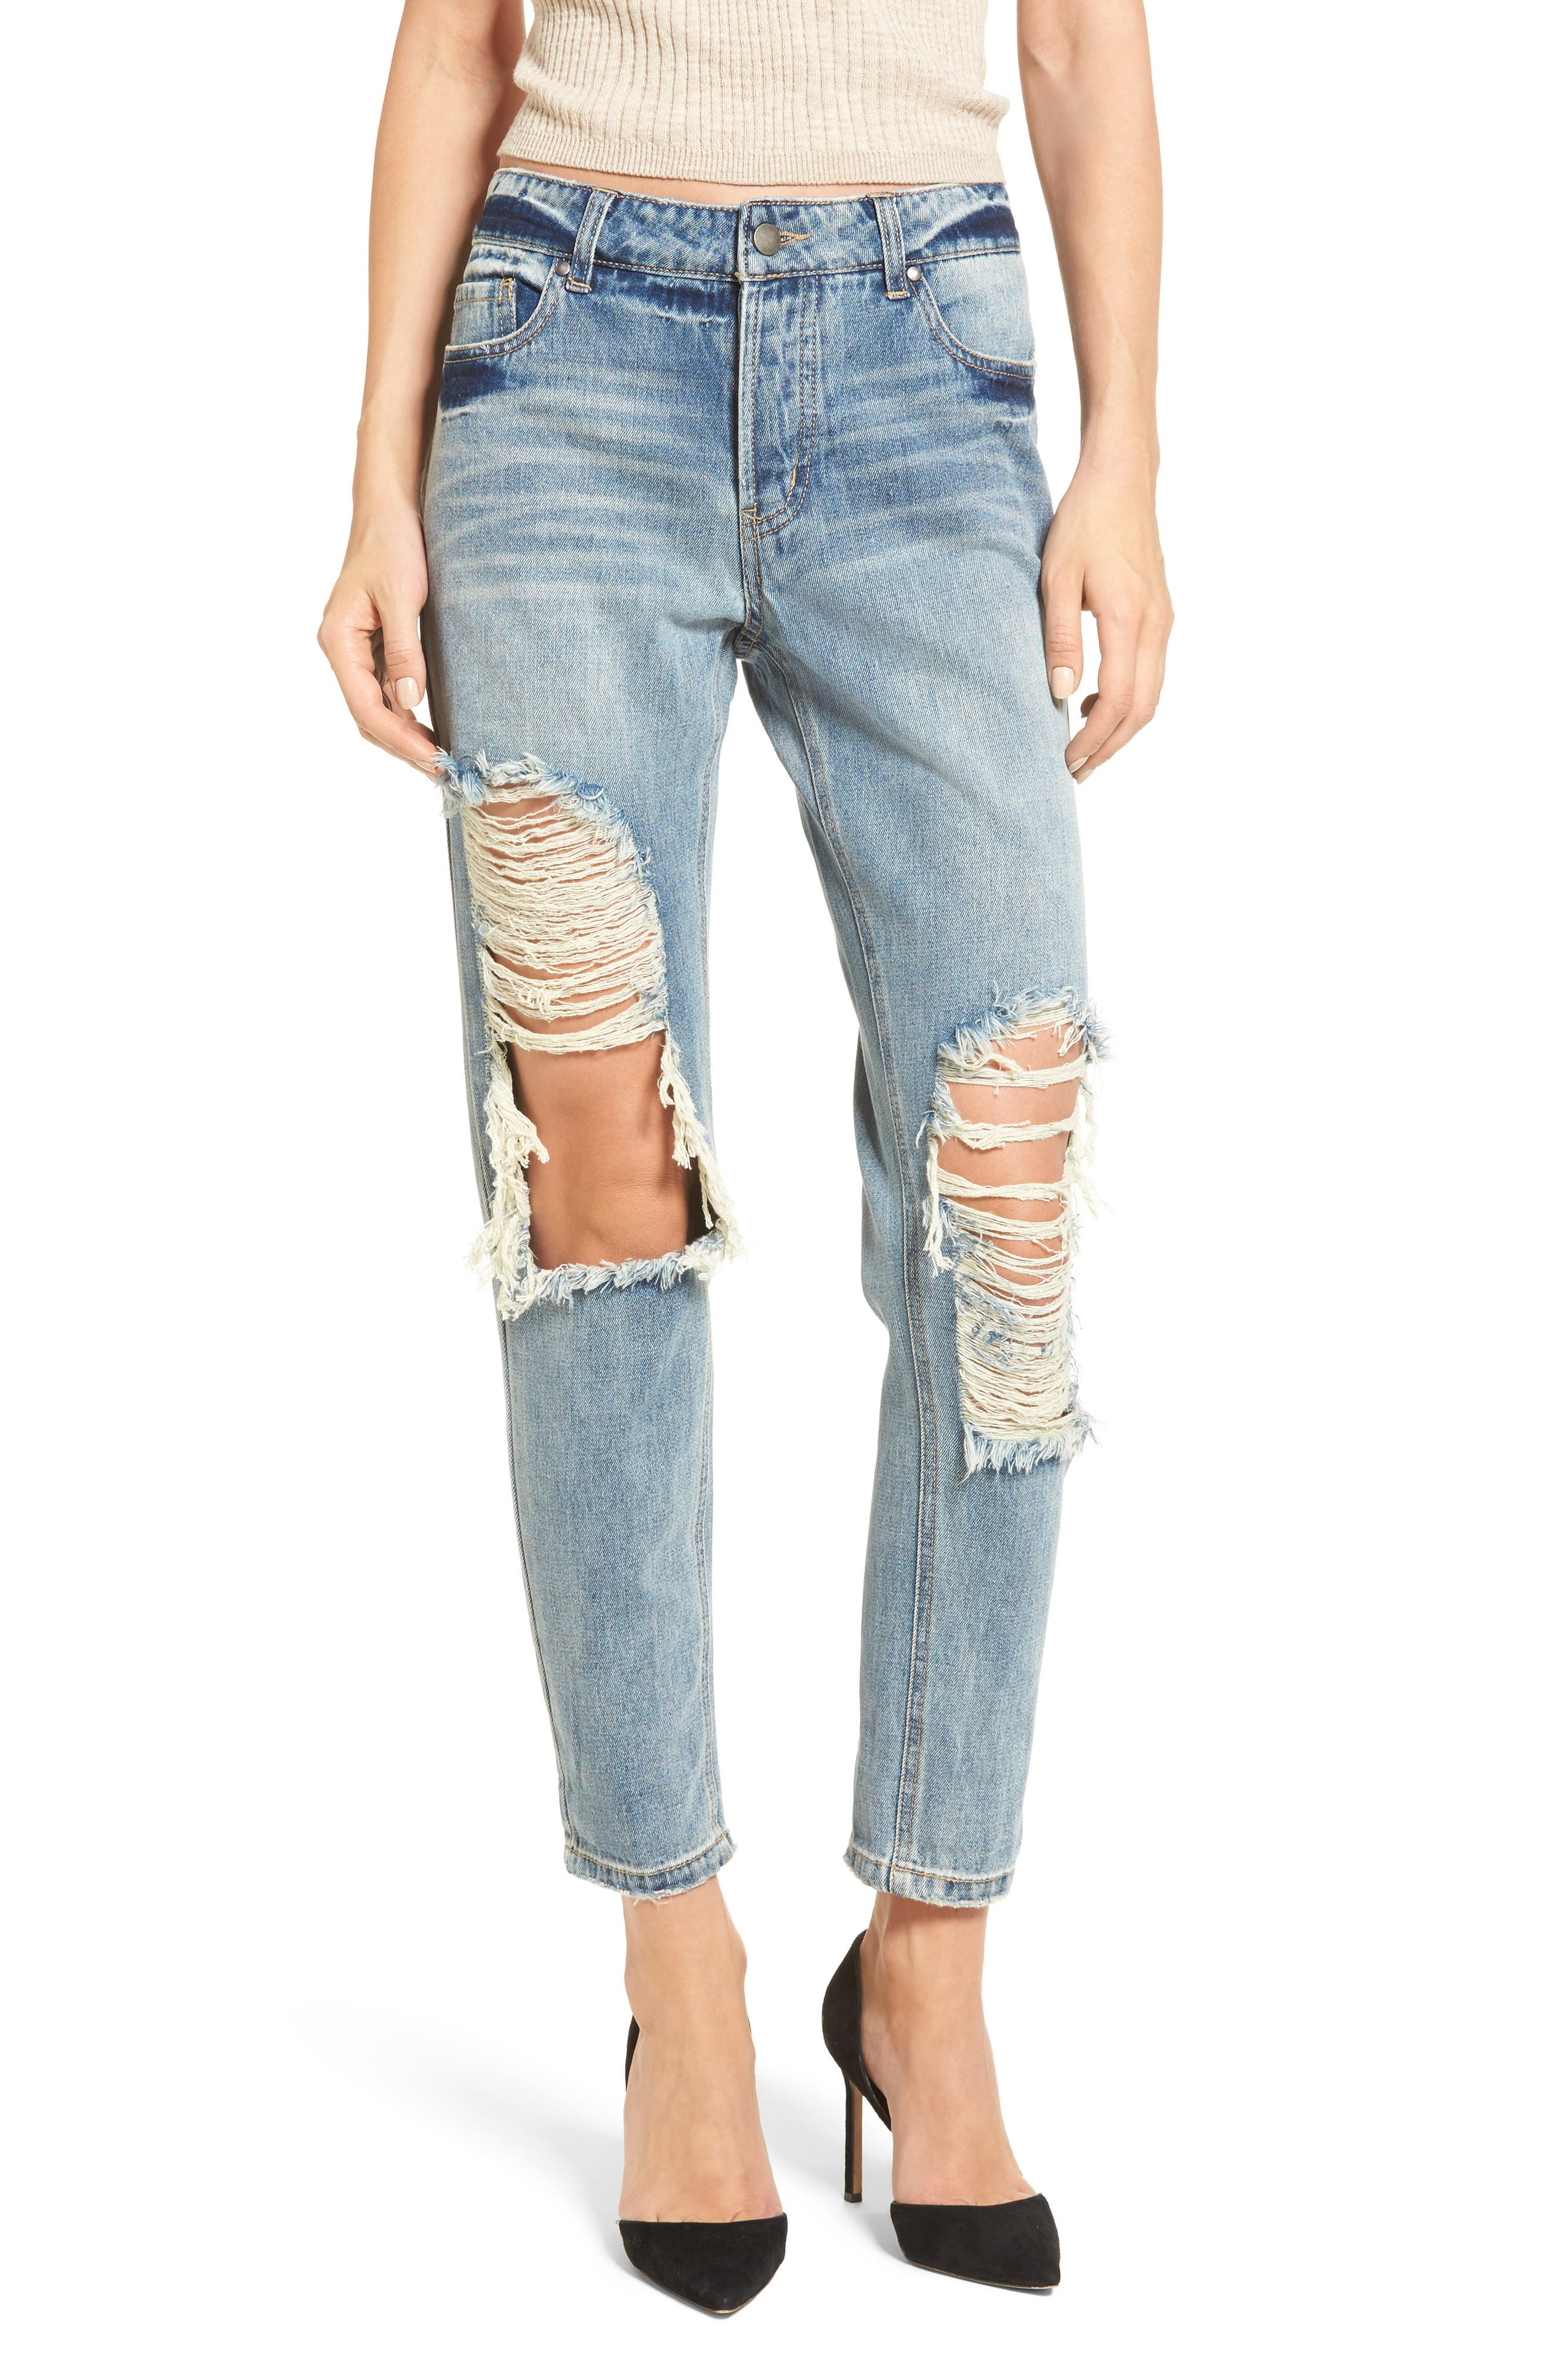 Cyrus High Waist Ankle Jeans,                             Main thumbnail 1, color,                             SINNER WASH